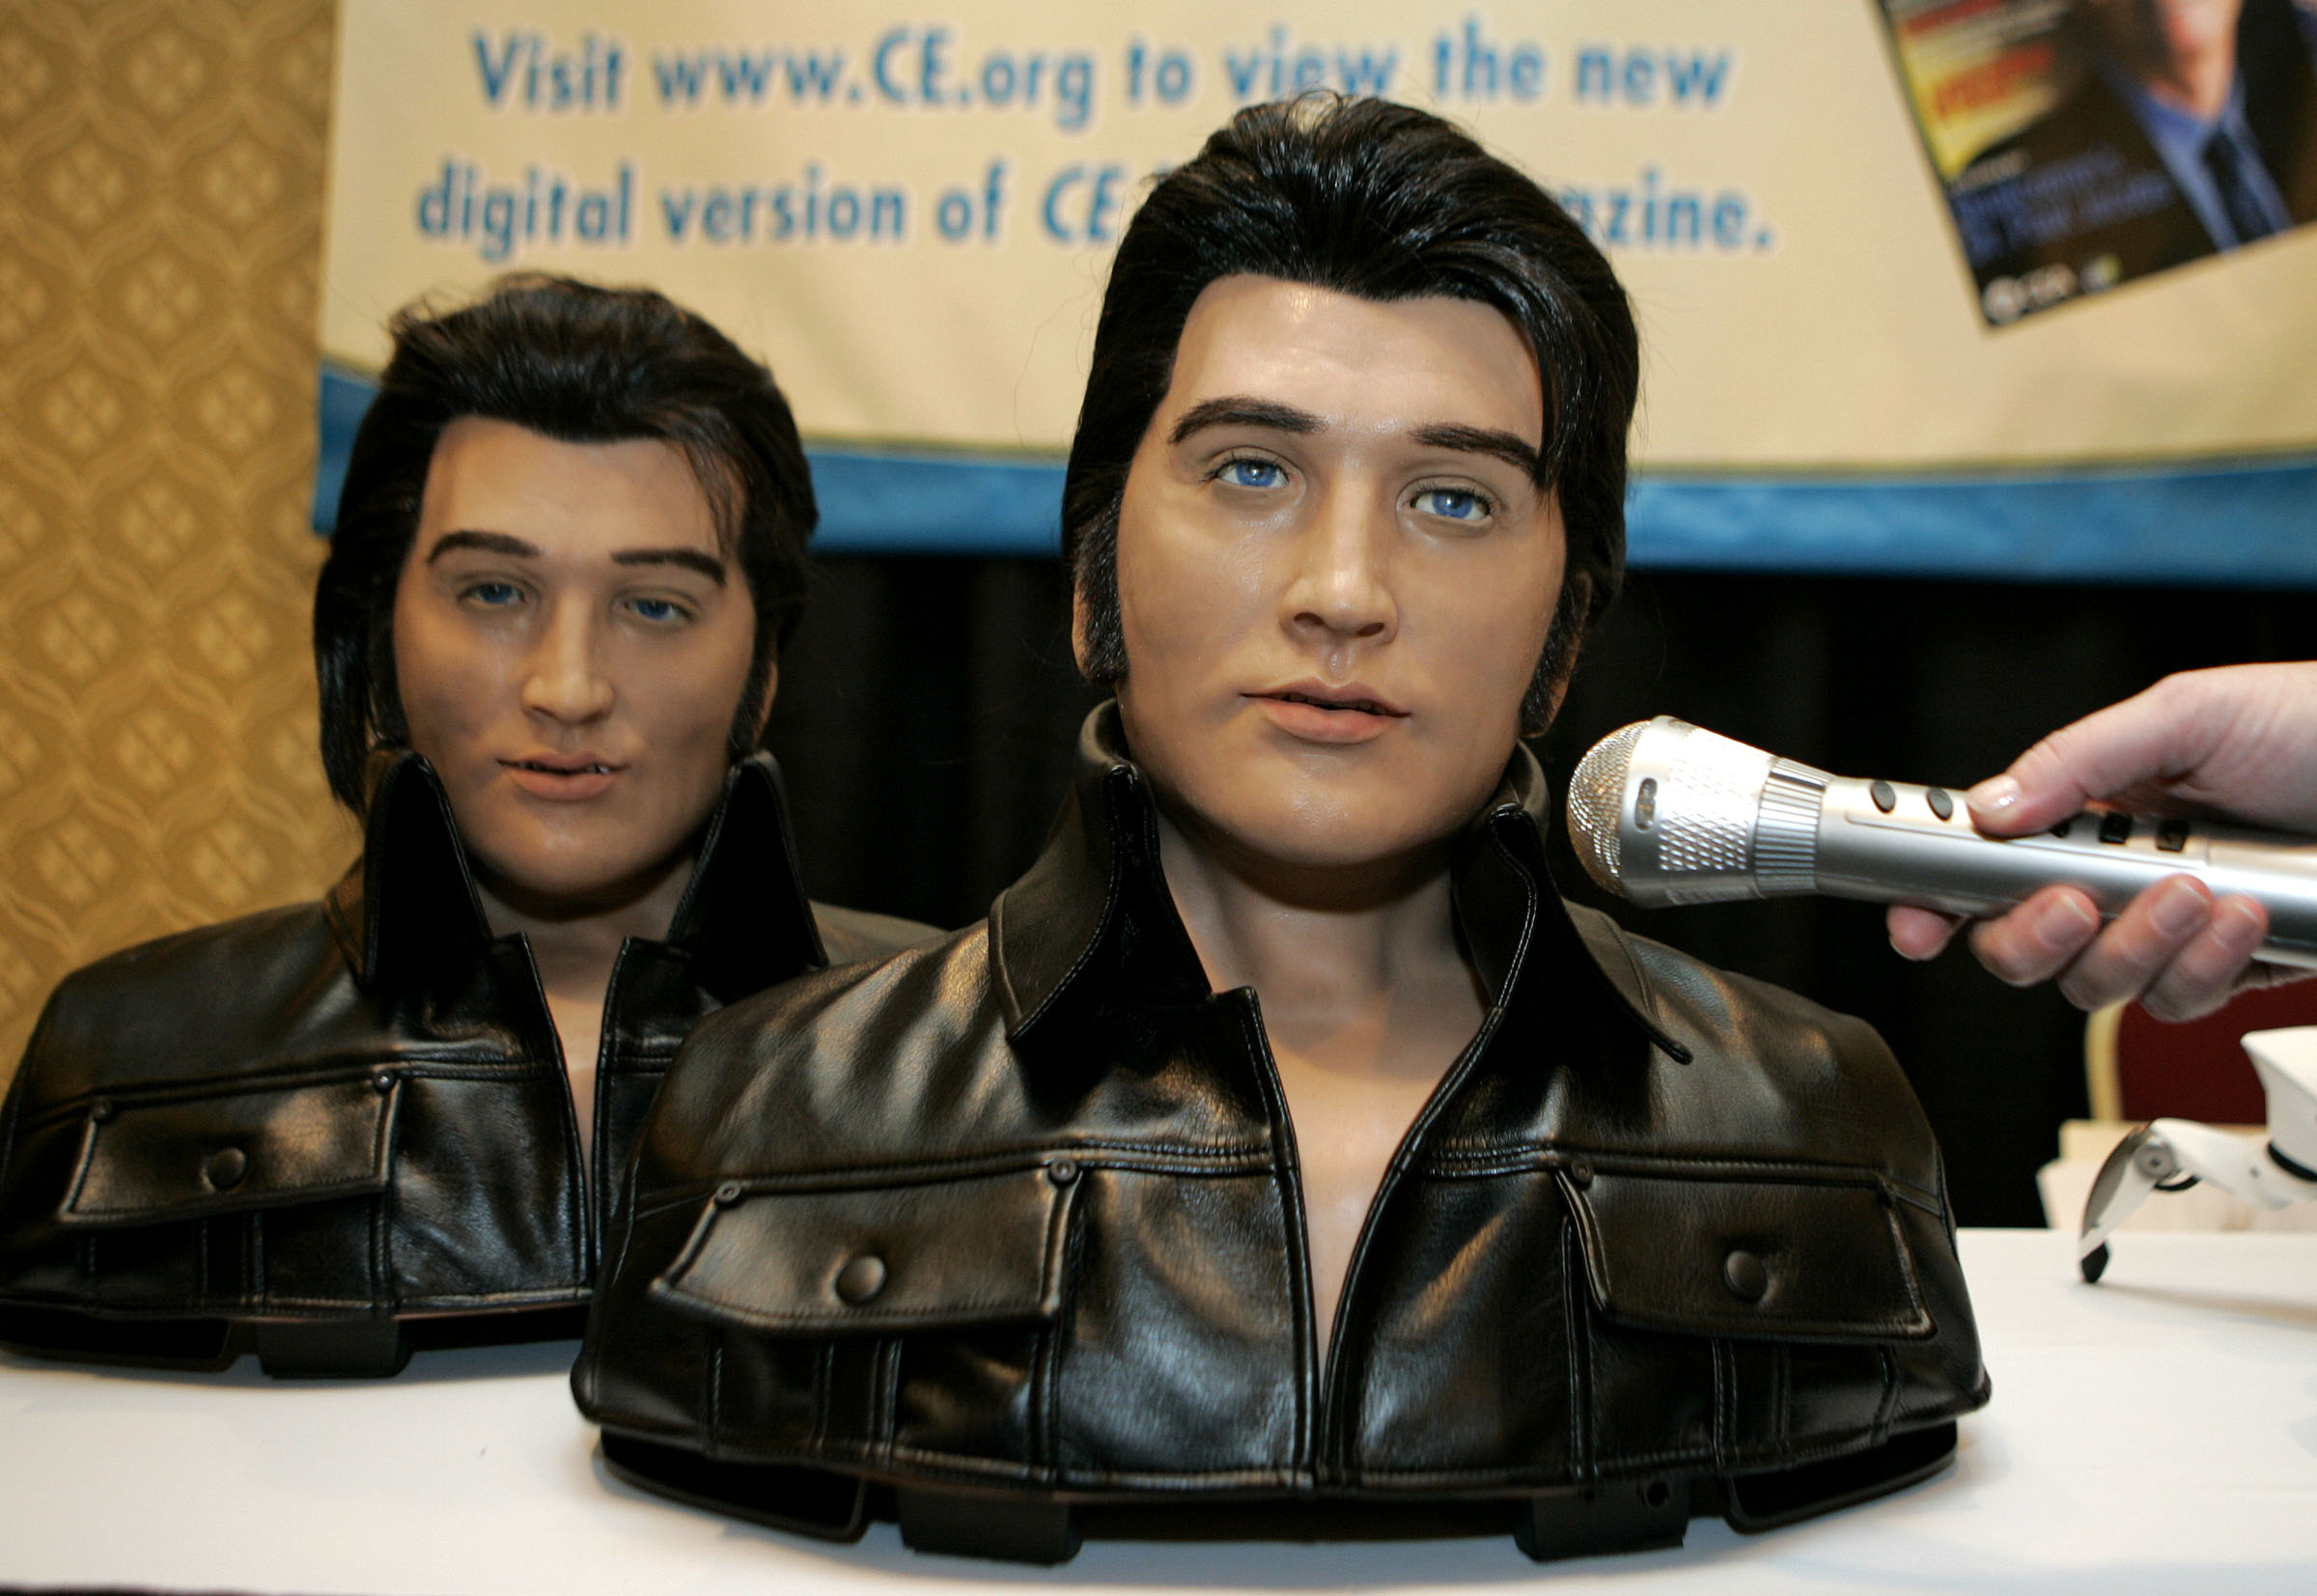 """WowWee Alive Elvis robots are showcased during the media preview of the Consumer Electronics Show in Las Vegas on Saturday, Jan. 6. 2007.  The robots sing eight different Elvis songs including """" Love me Tender"""" and """"Hound Dog."""" (AP Photo/Jae C. Hong)"""